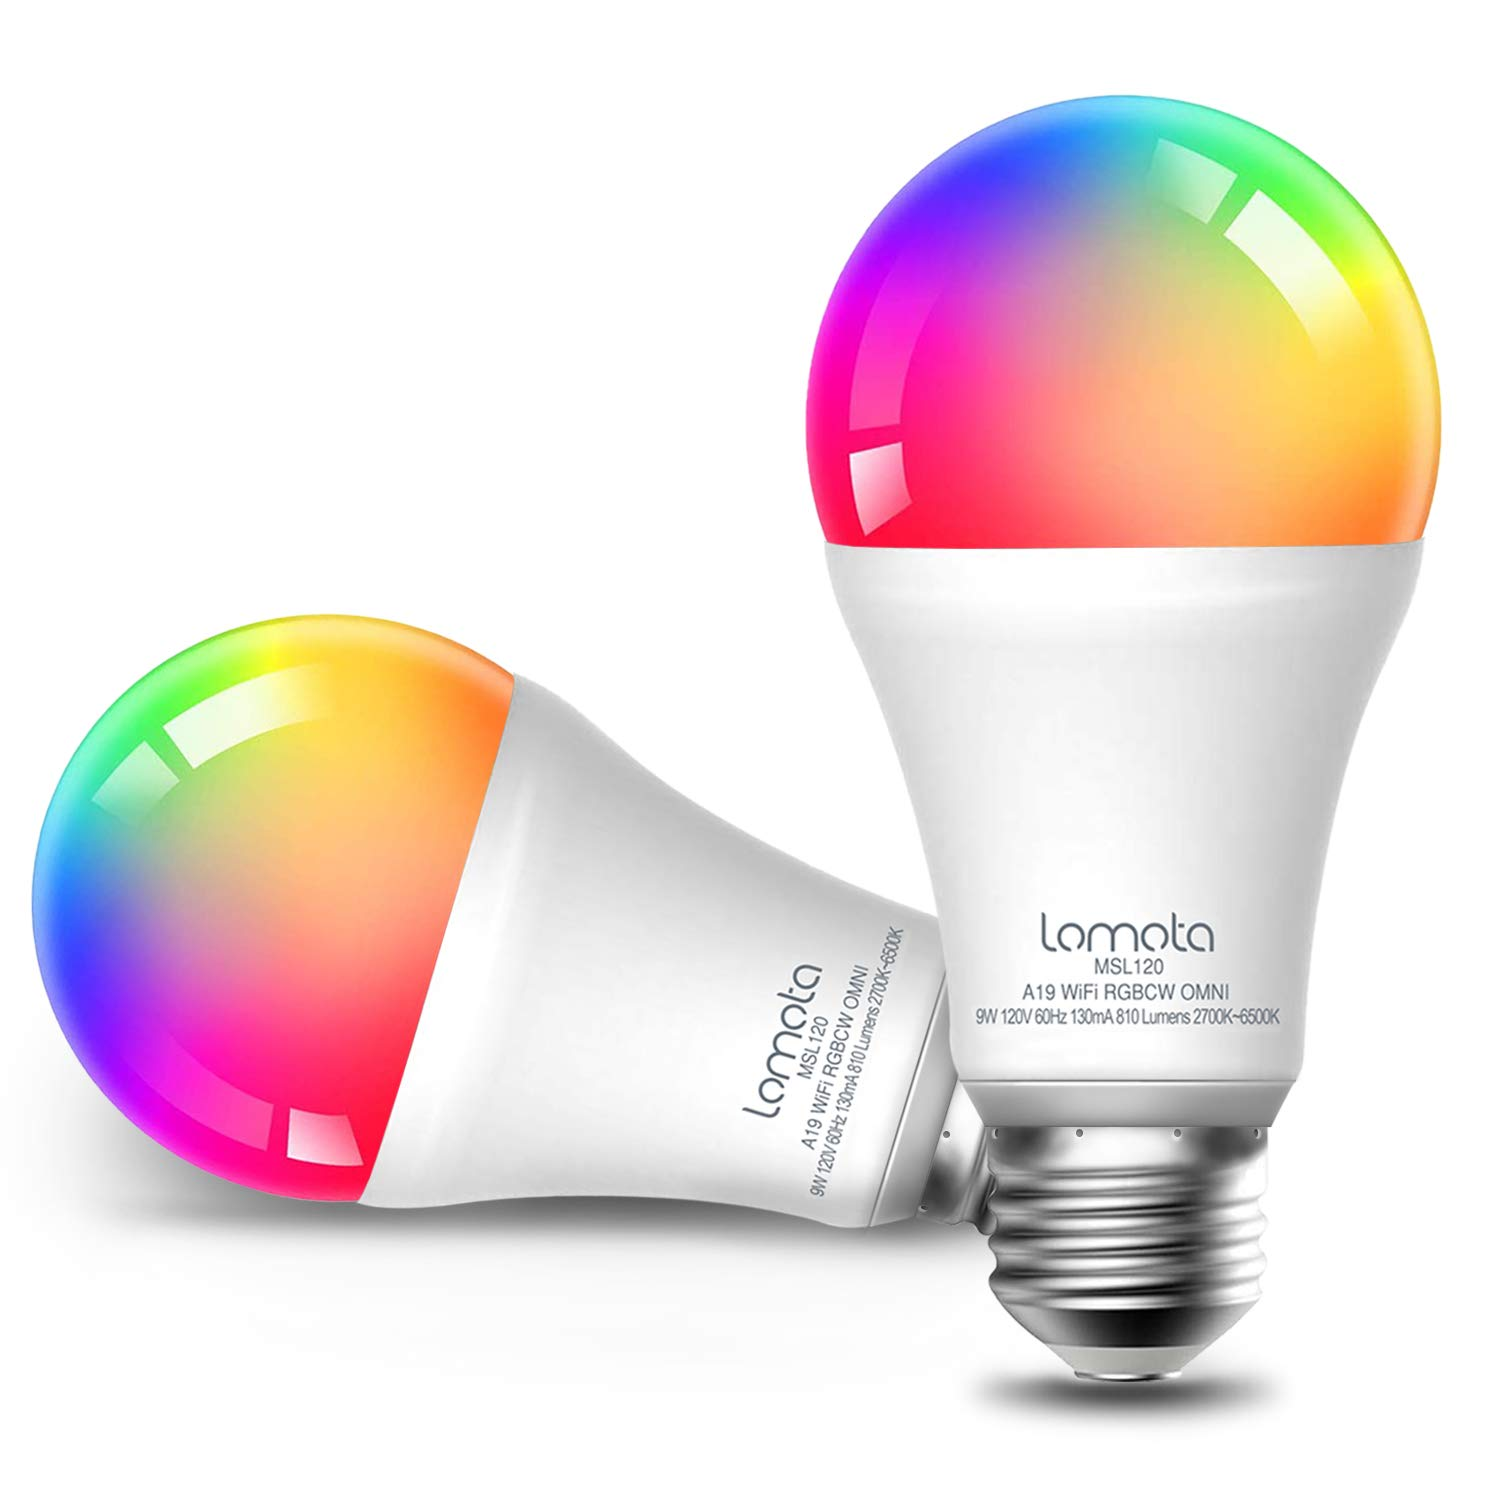 WiFi Smart Light Bulb Dimmable, Compatible with Alexa and Google Assistant, 2700K-6500K RGBCW, 810 Lumens 60W Equivalent, Lomota A19 E26 WiFi LED Light Bulb, No Hub Needed - 4 Pack